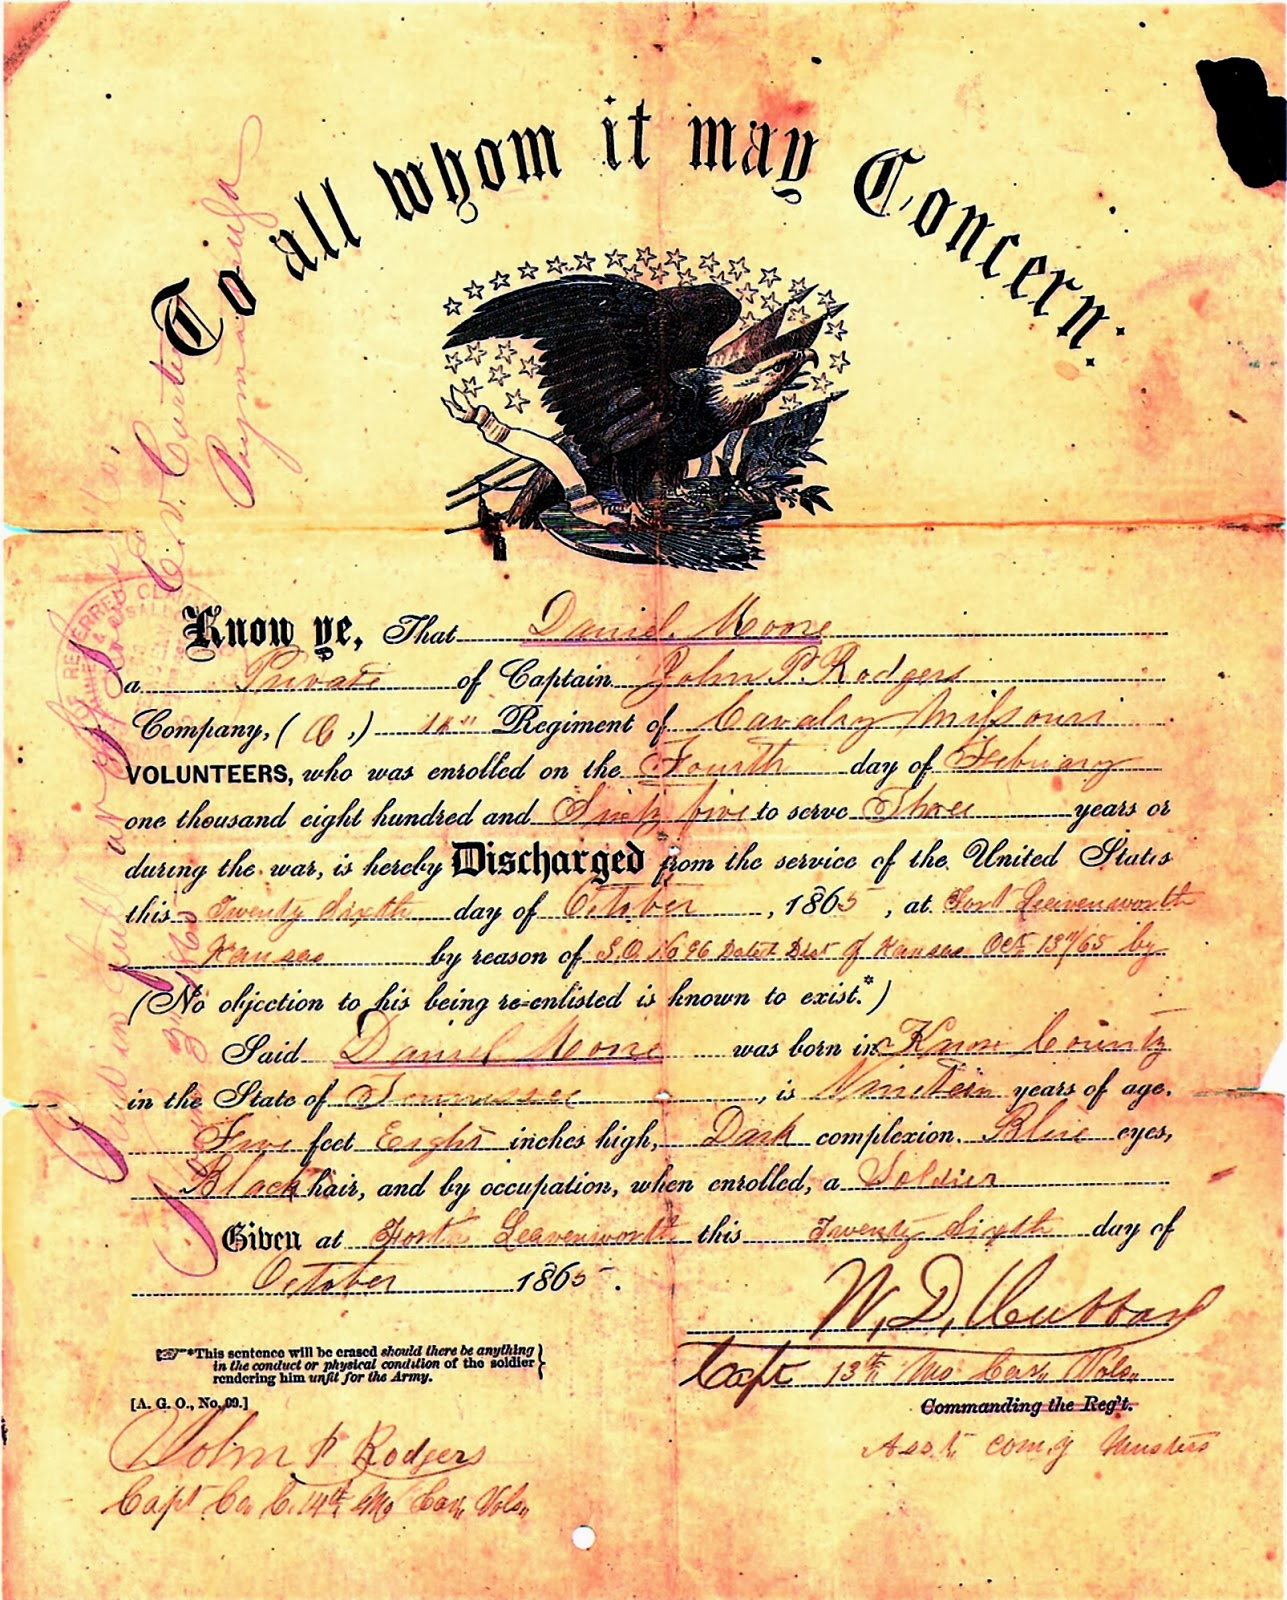 daniel moore s second enlistment and honorable discharge with the 14th cavalry he now proclaims soldier as his occupation at time of induction